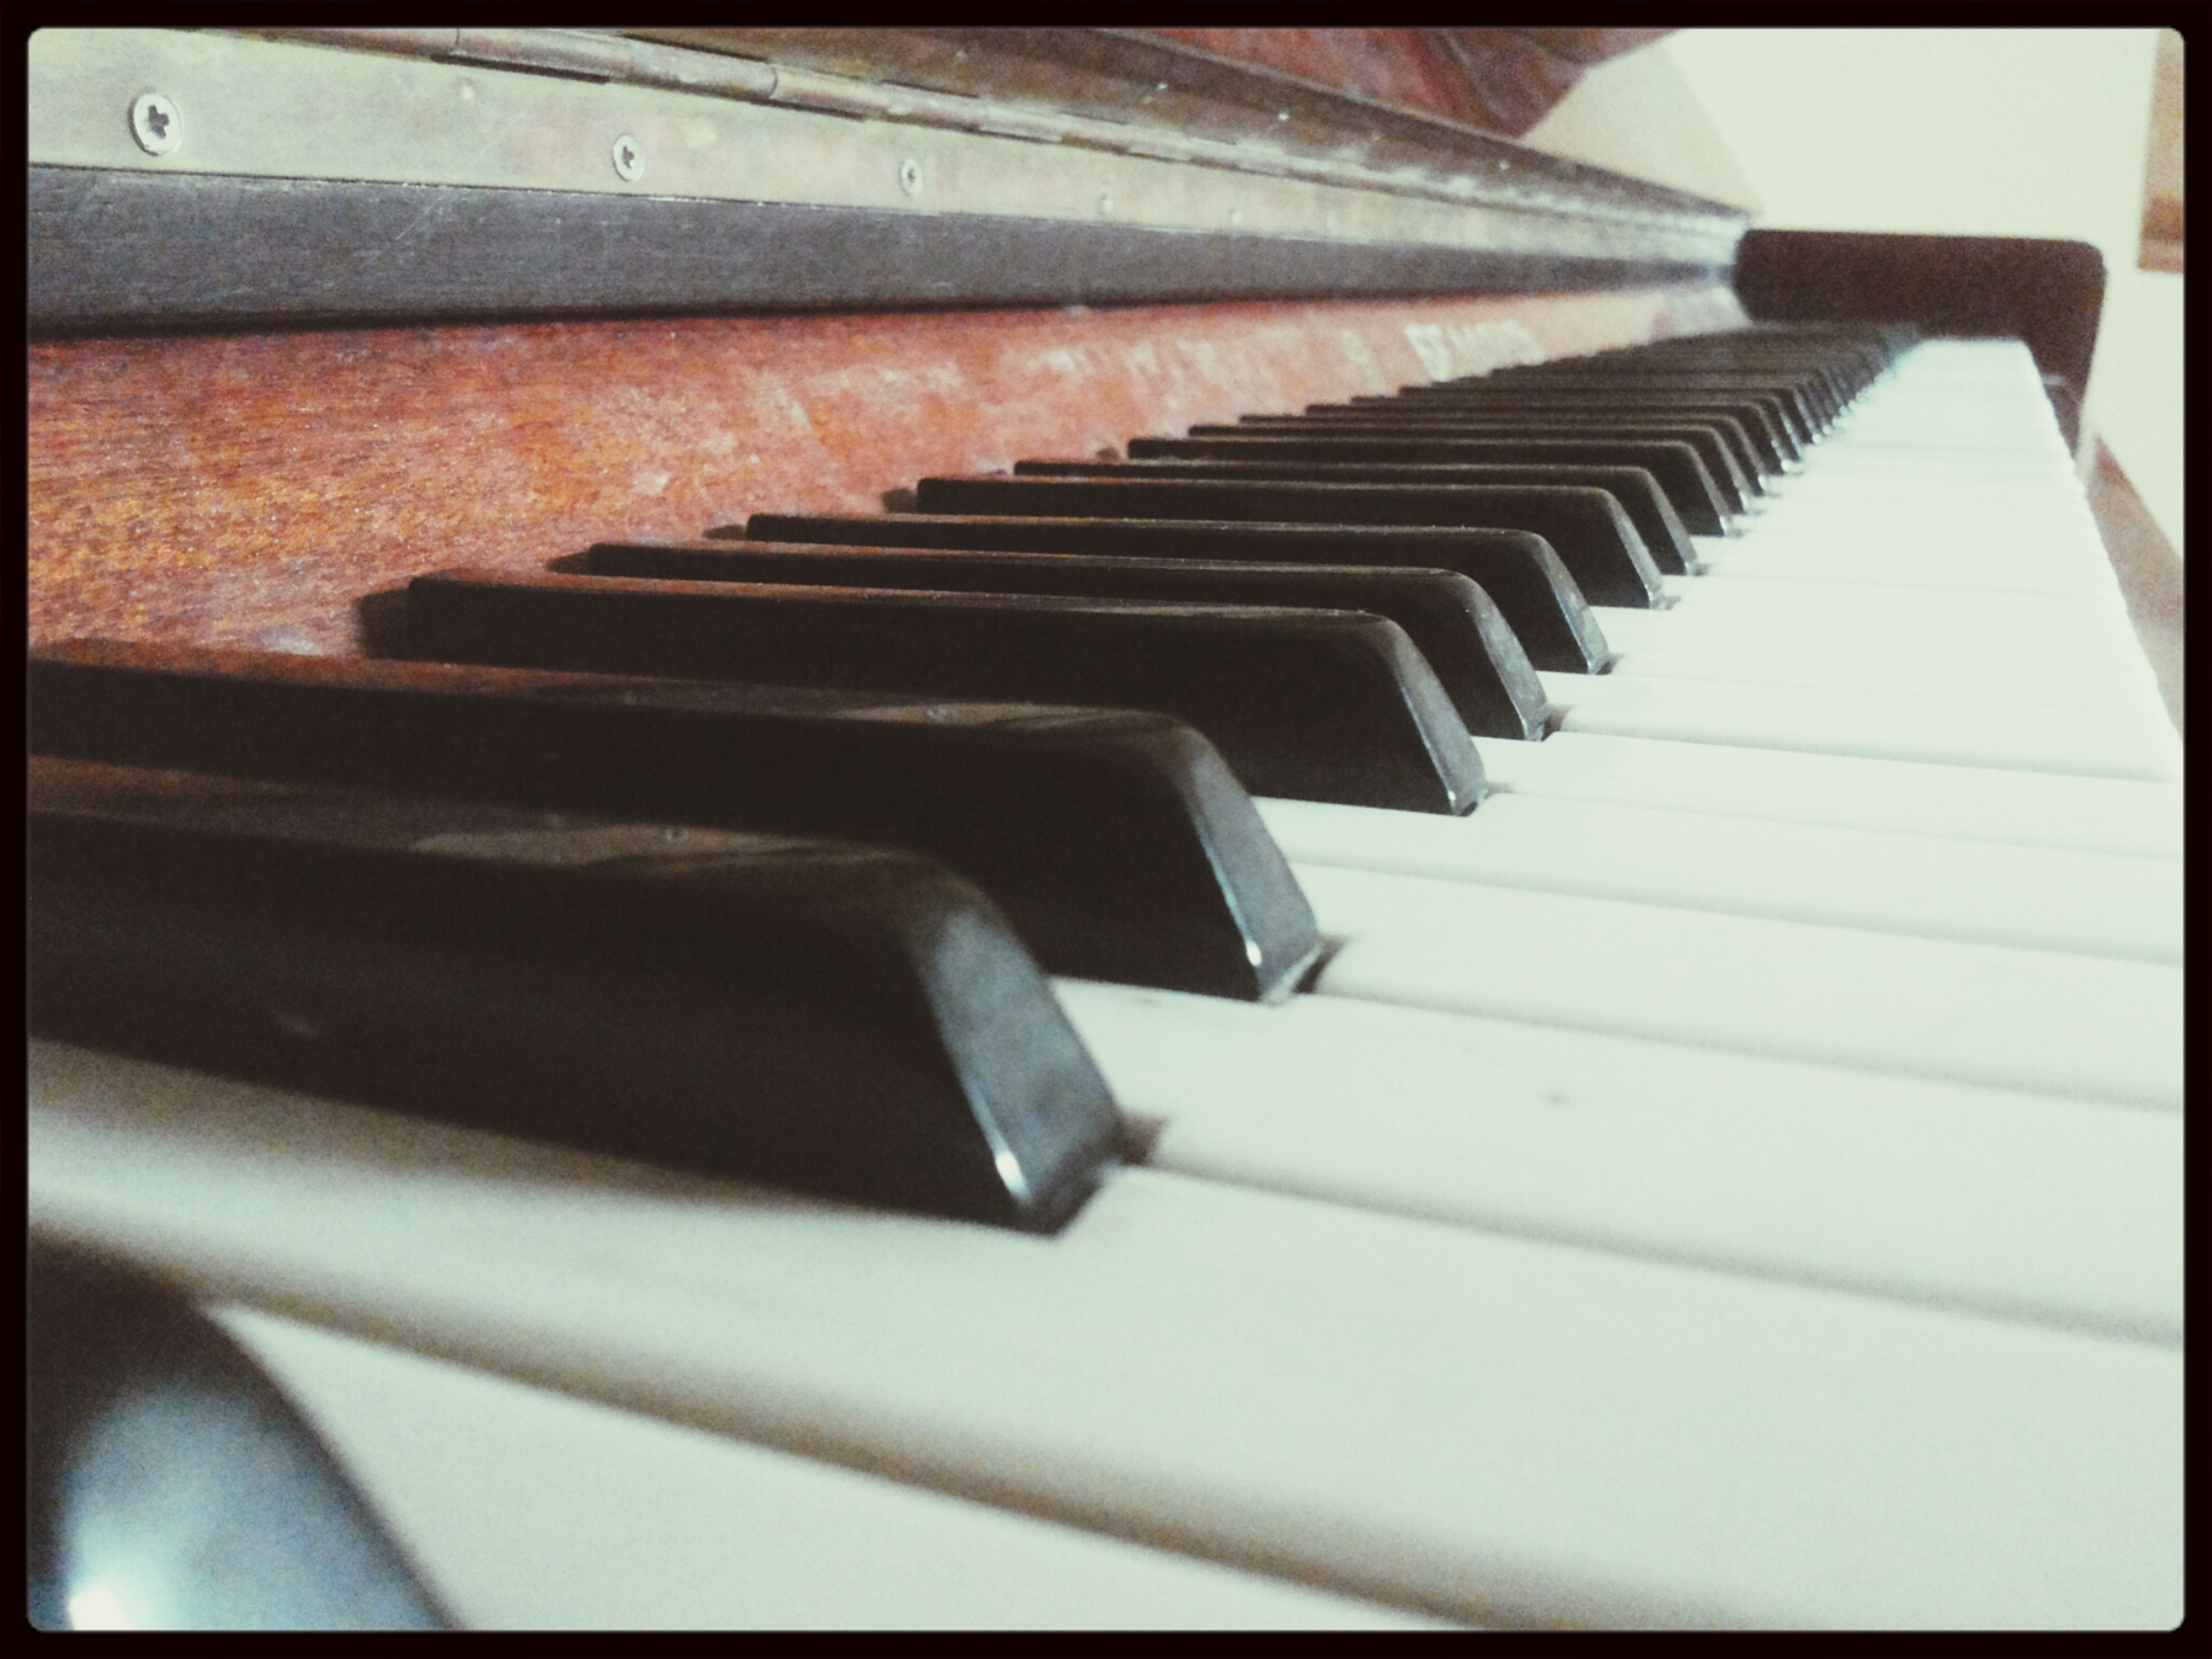 indoors, transfer print, piano, piano key, musical instrument, music, auto post production filter, close-up, arts culture and entertainment, in a row, steps, wood - material, high angle view, steps and staircases, staircase, musical equipment, no people, selective focus, railing, part of